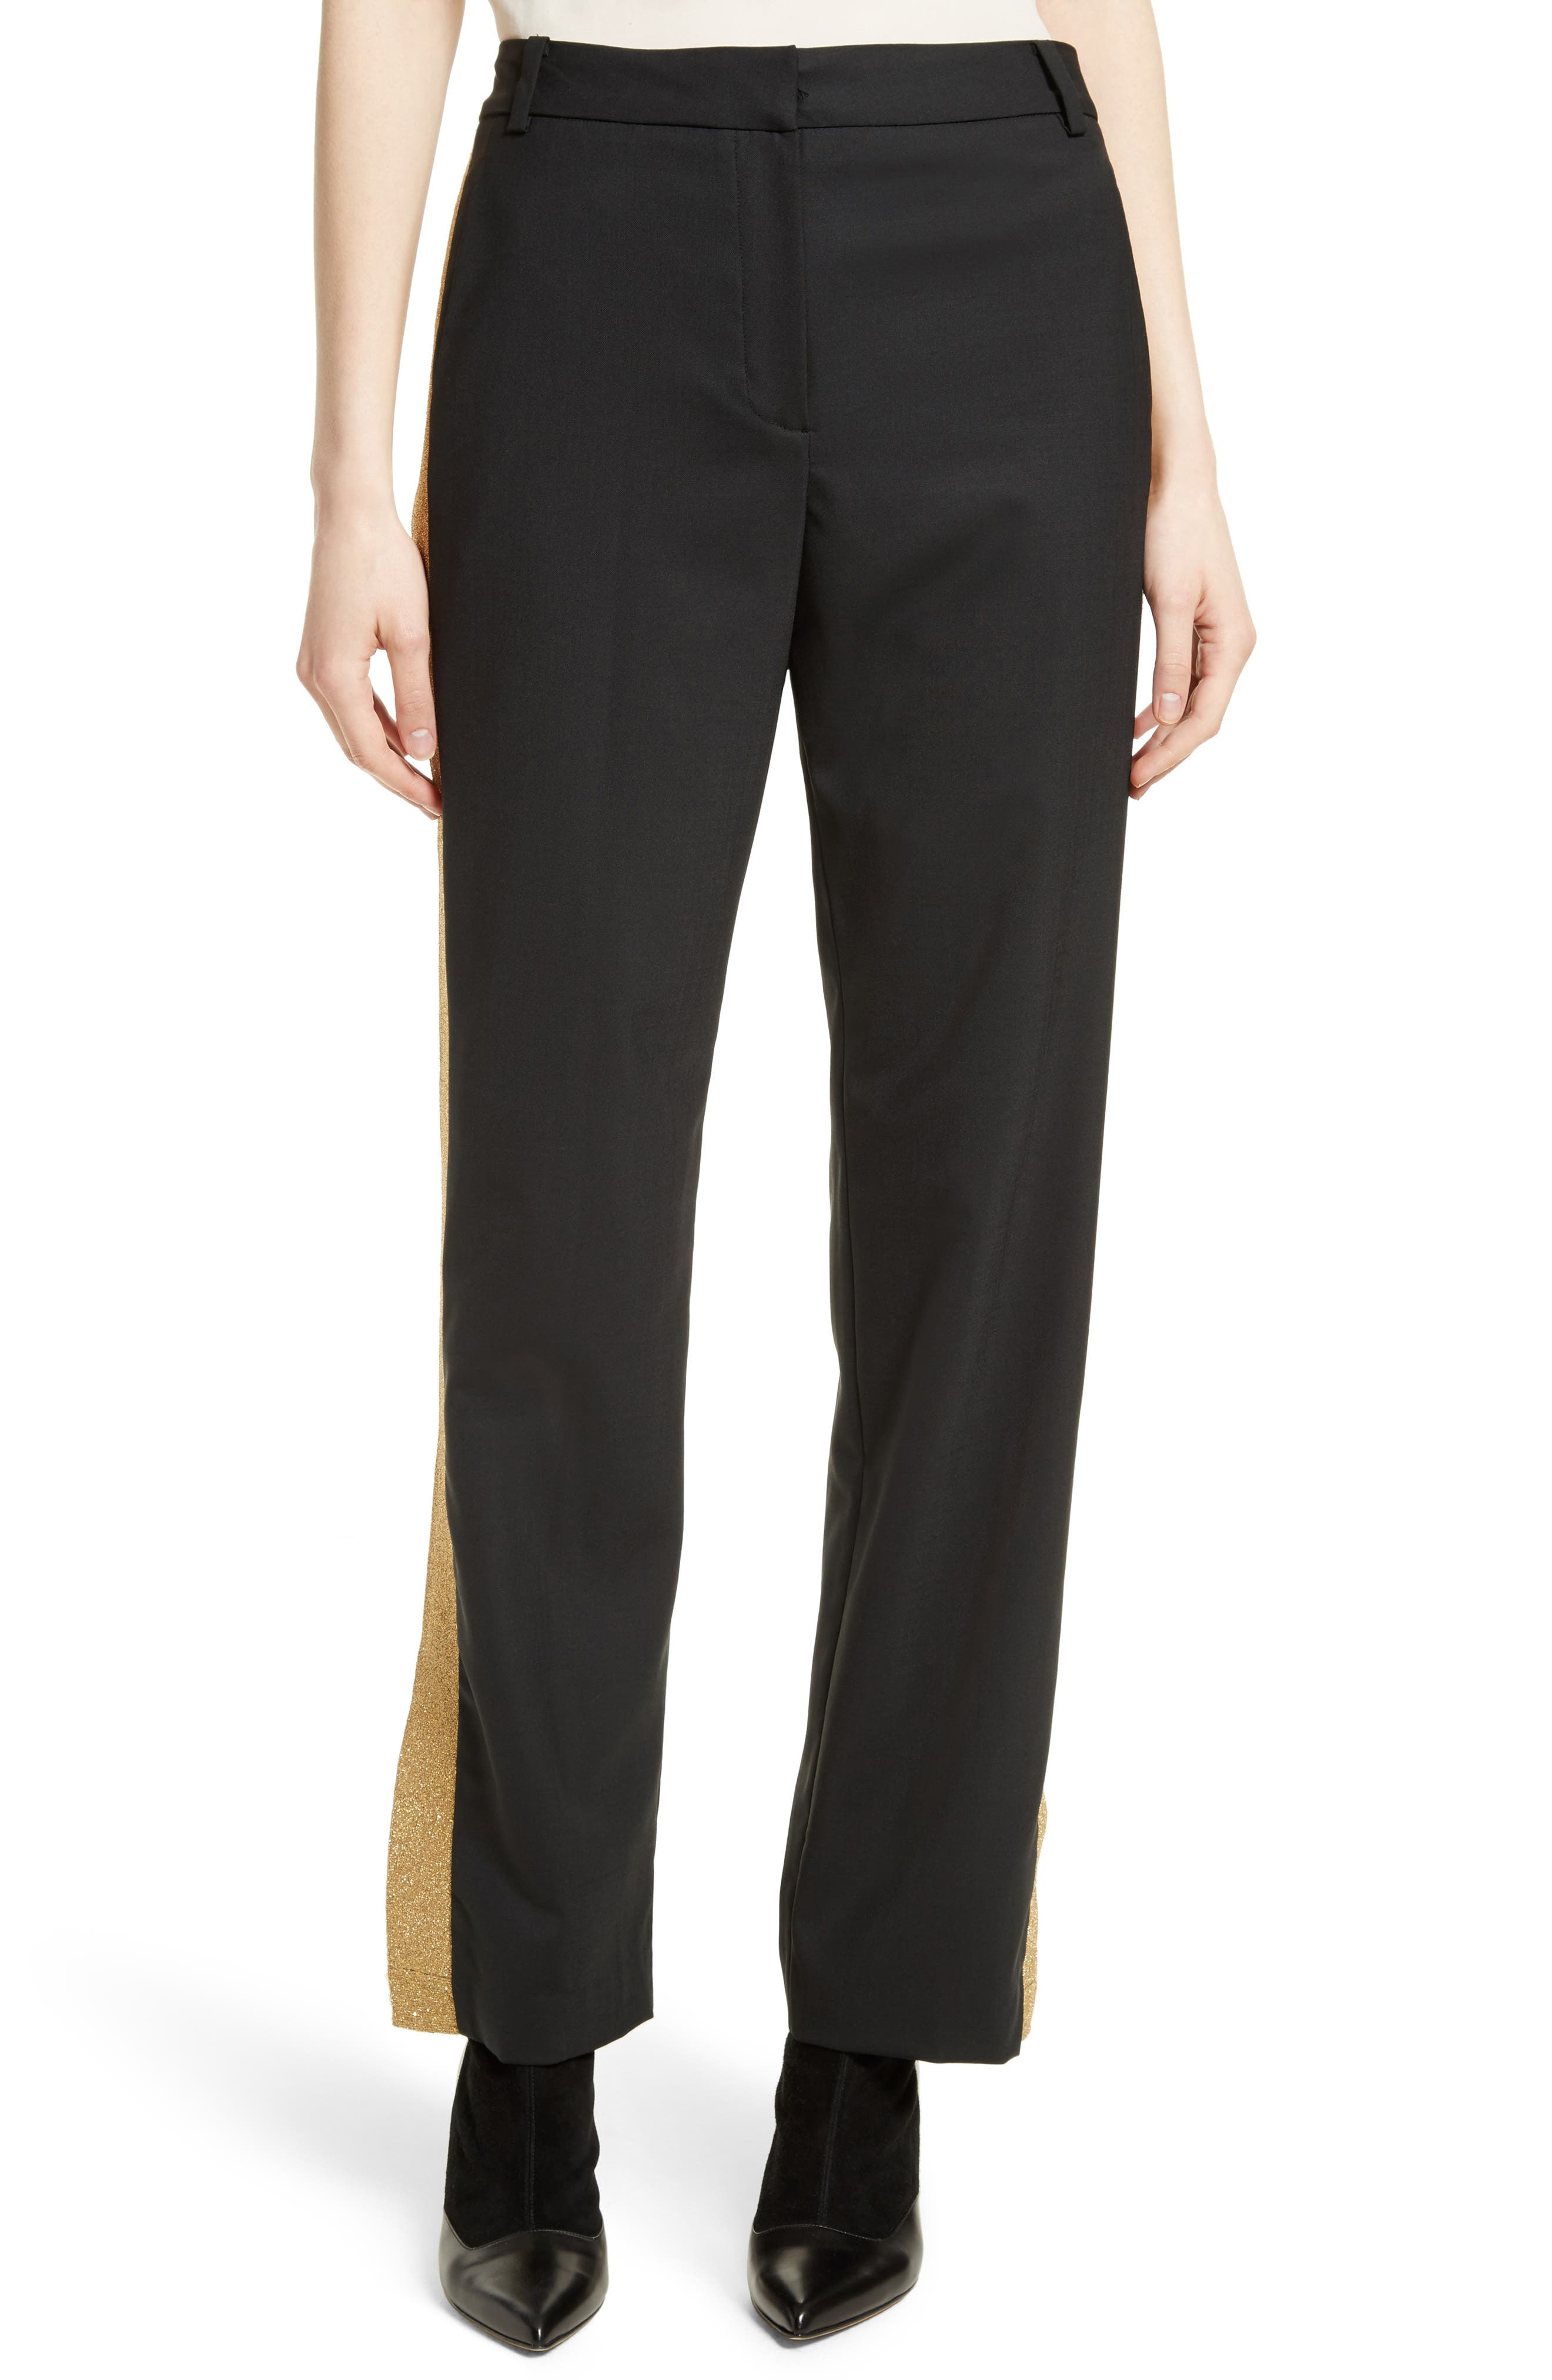 Tibi Tropical Blend Tuxedo Pants